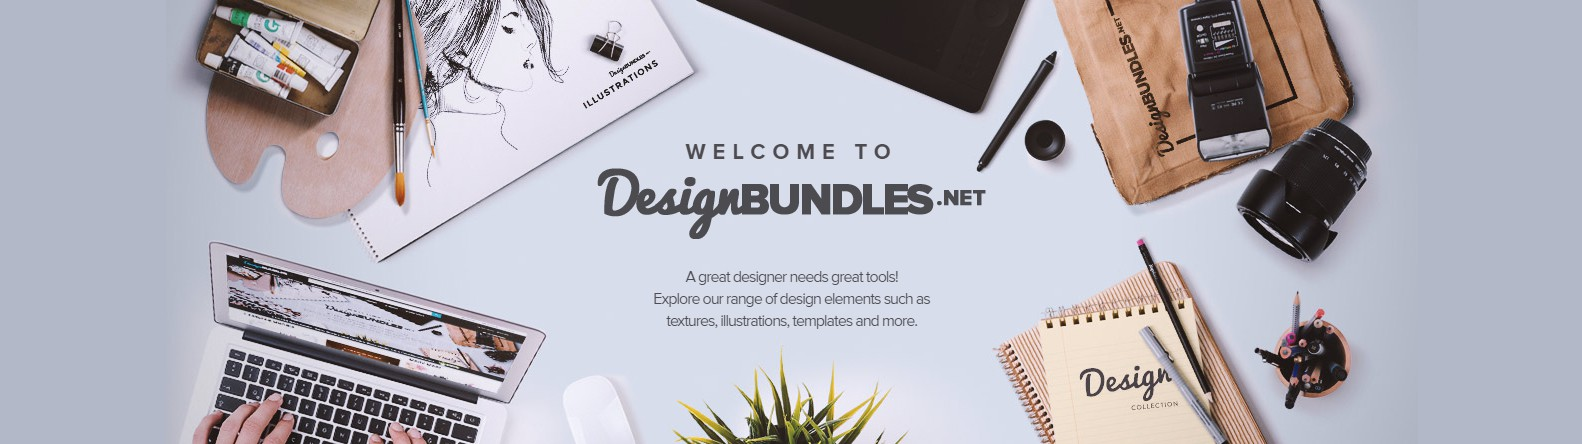 Premium, Free Design Resources by DesignBundles.net